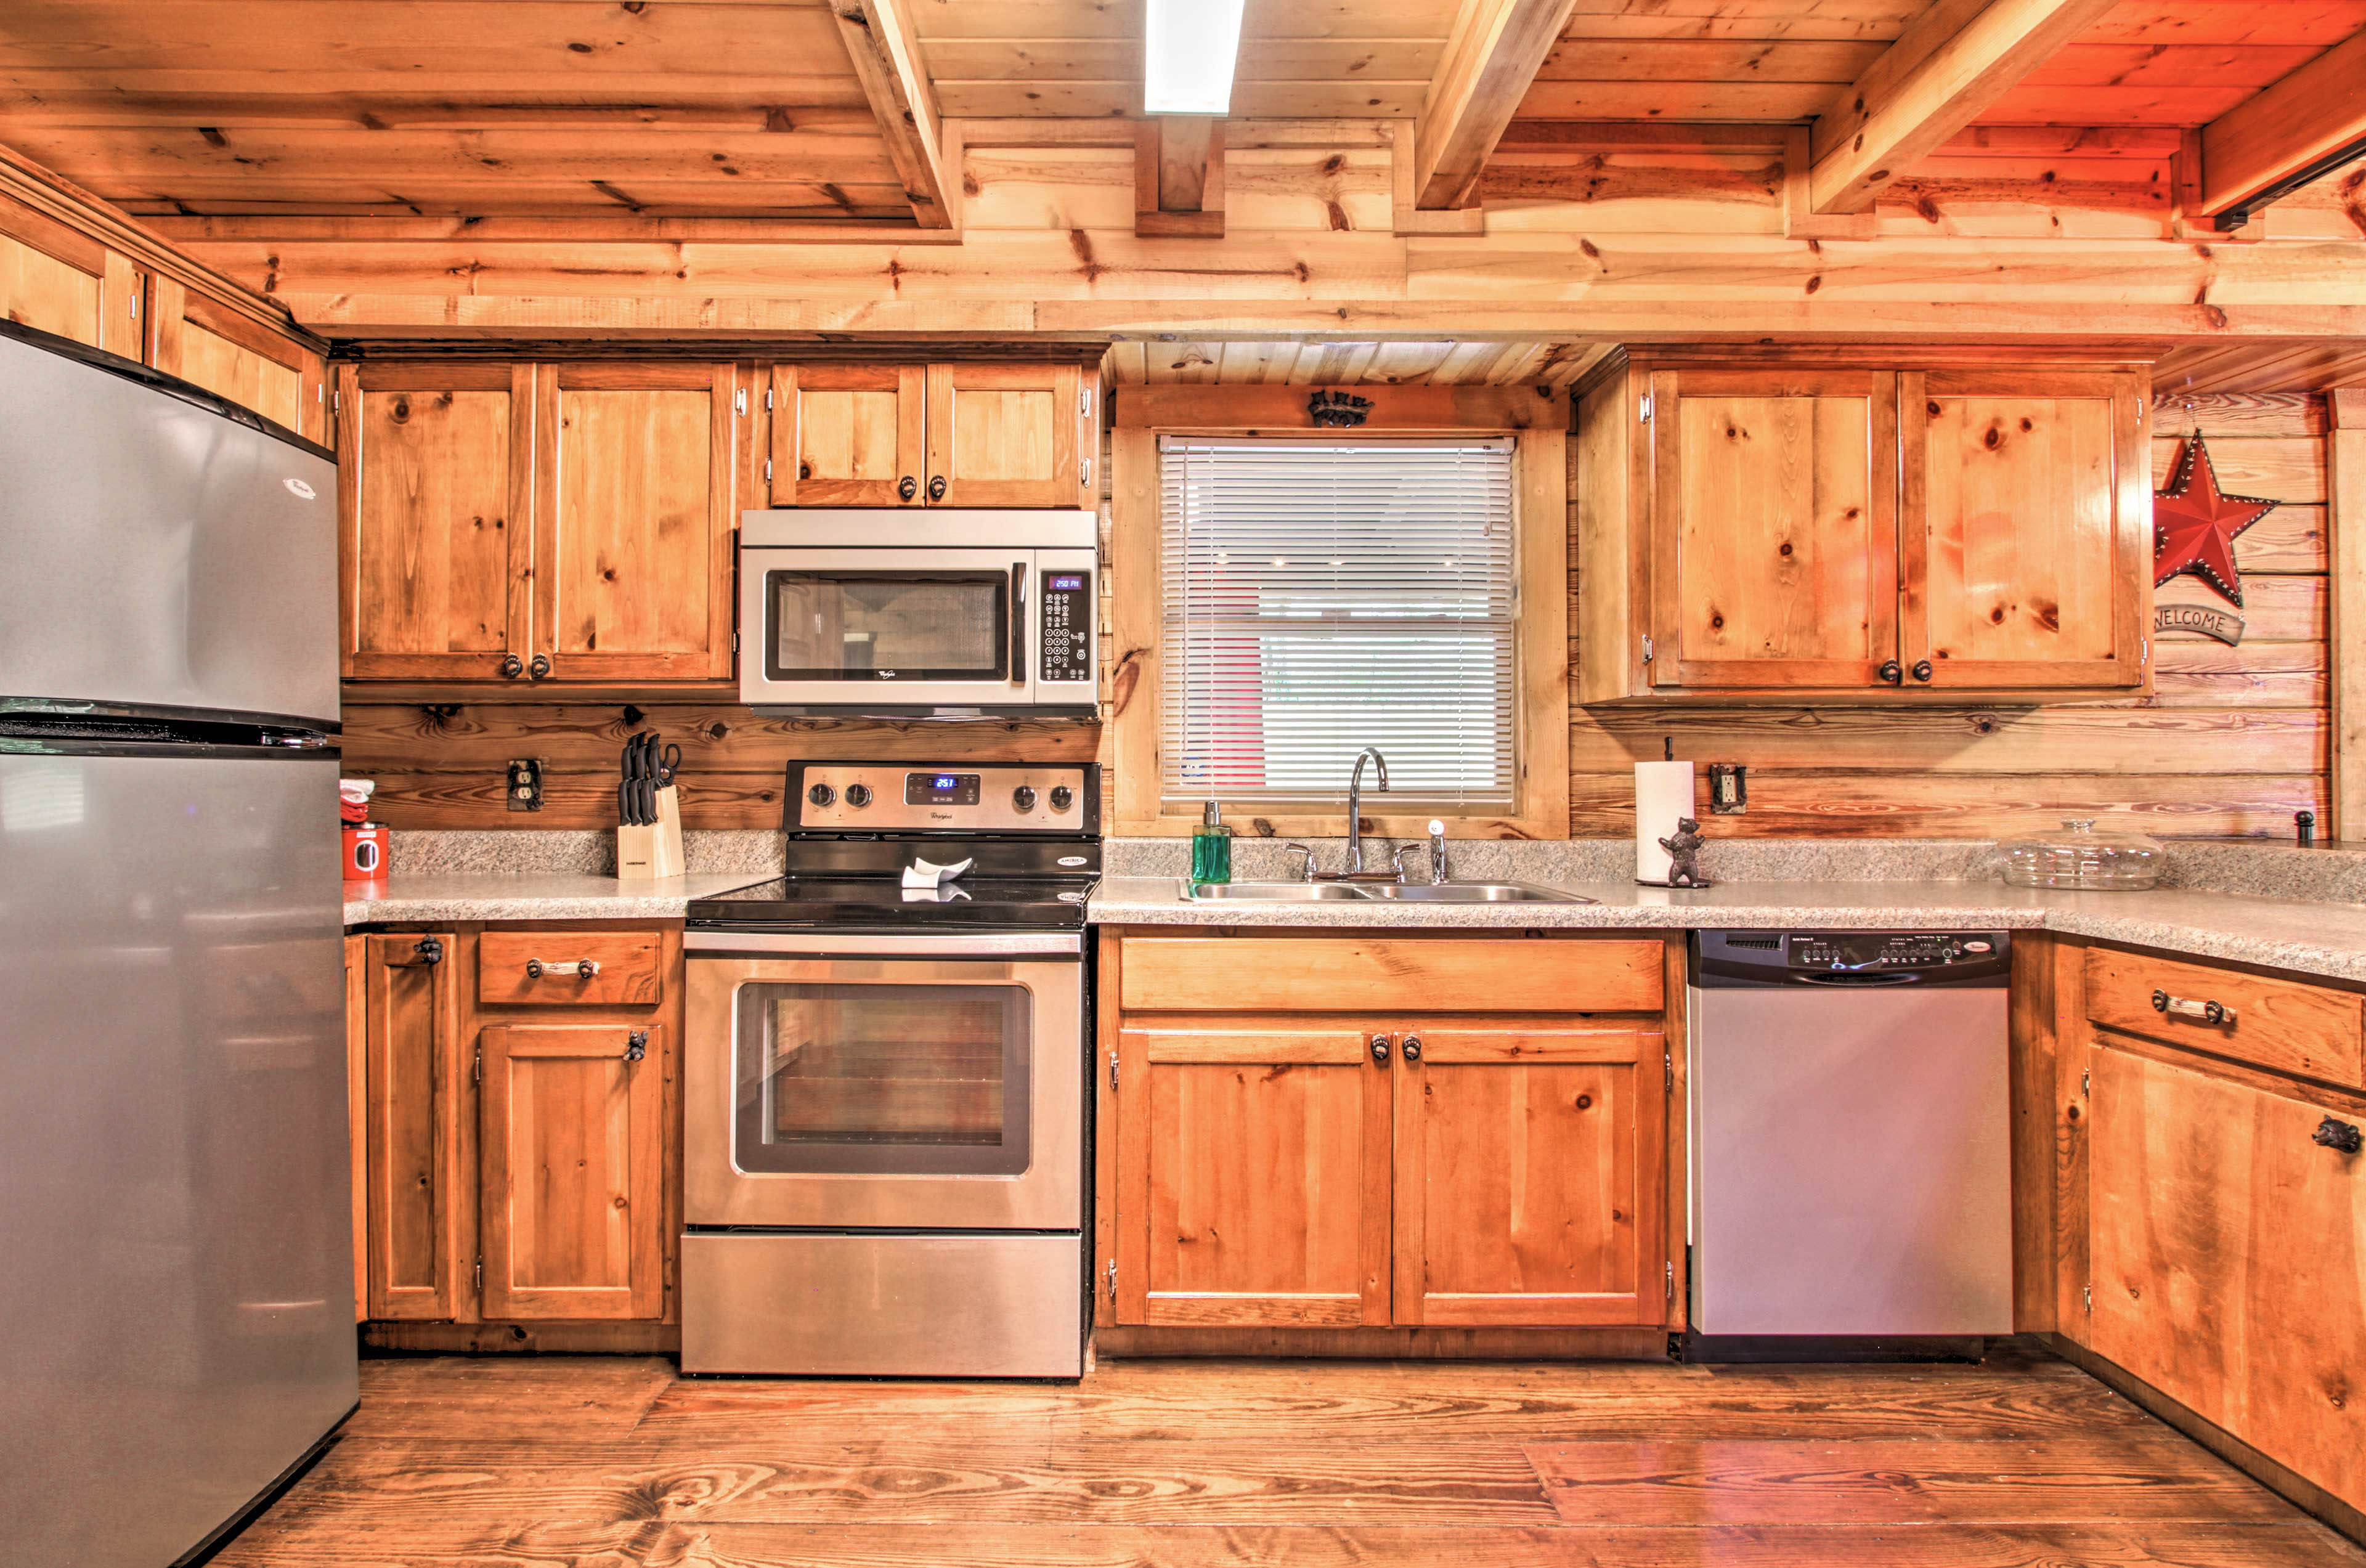 The fully equipped kitchen includes a dishwasher.